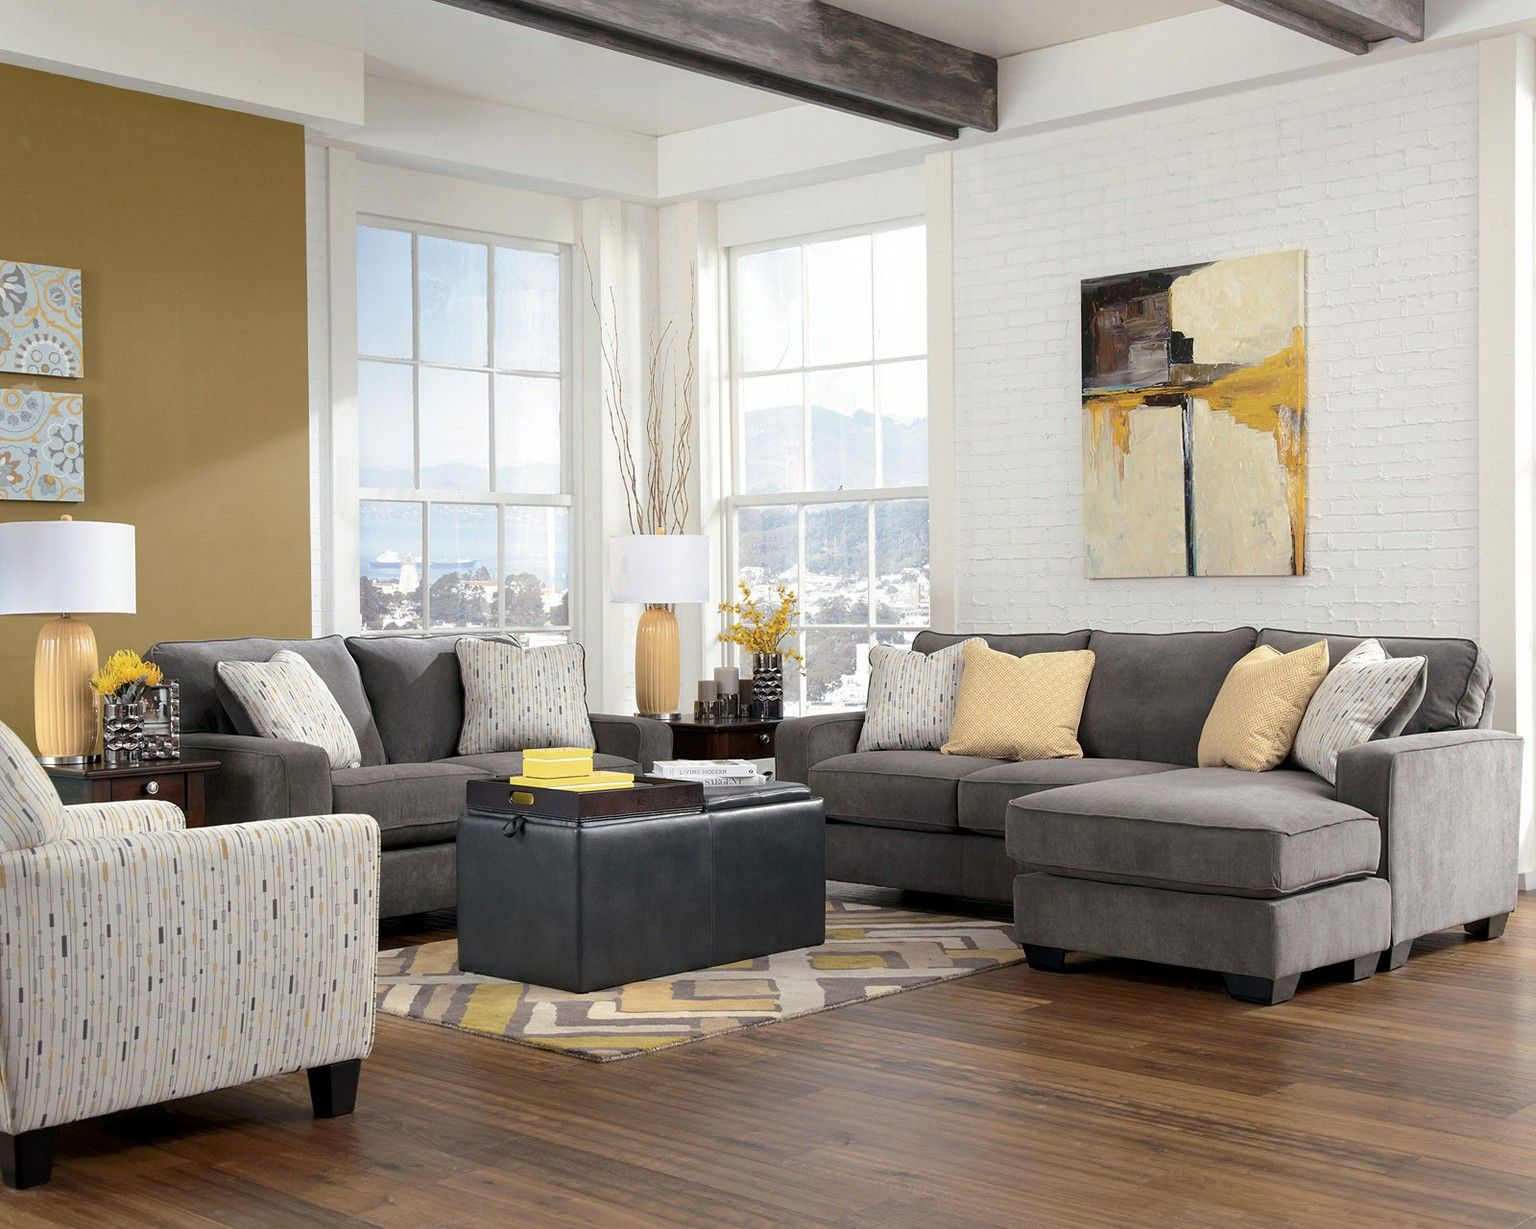 living rooms with grey sofas. Ways to Decorate Grey Living Rooms  Dark gray couches